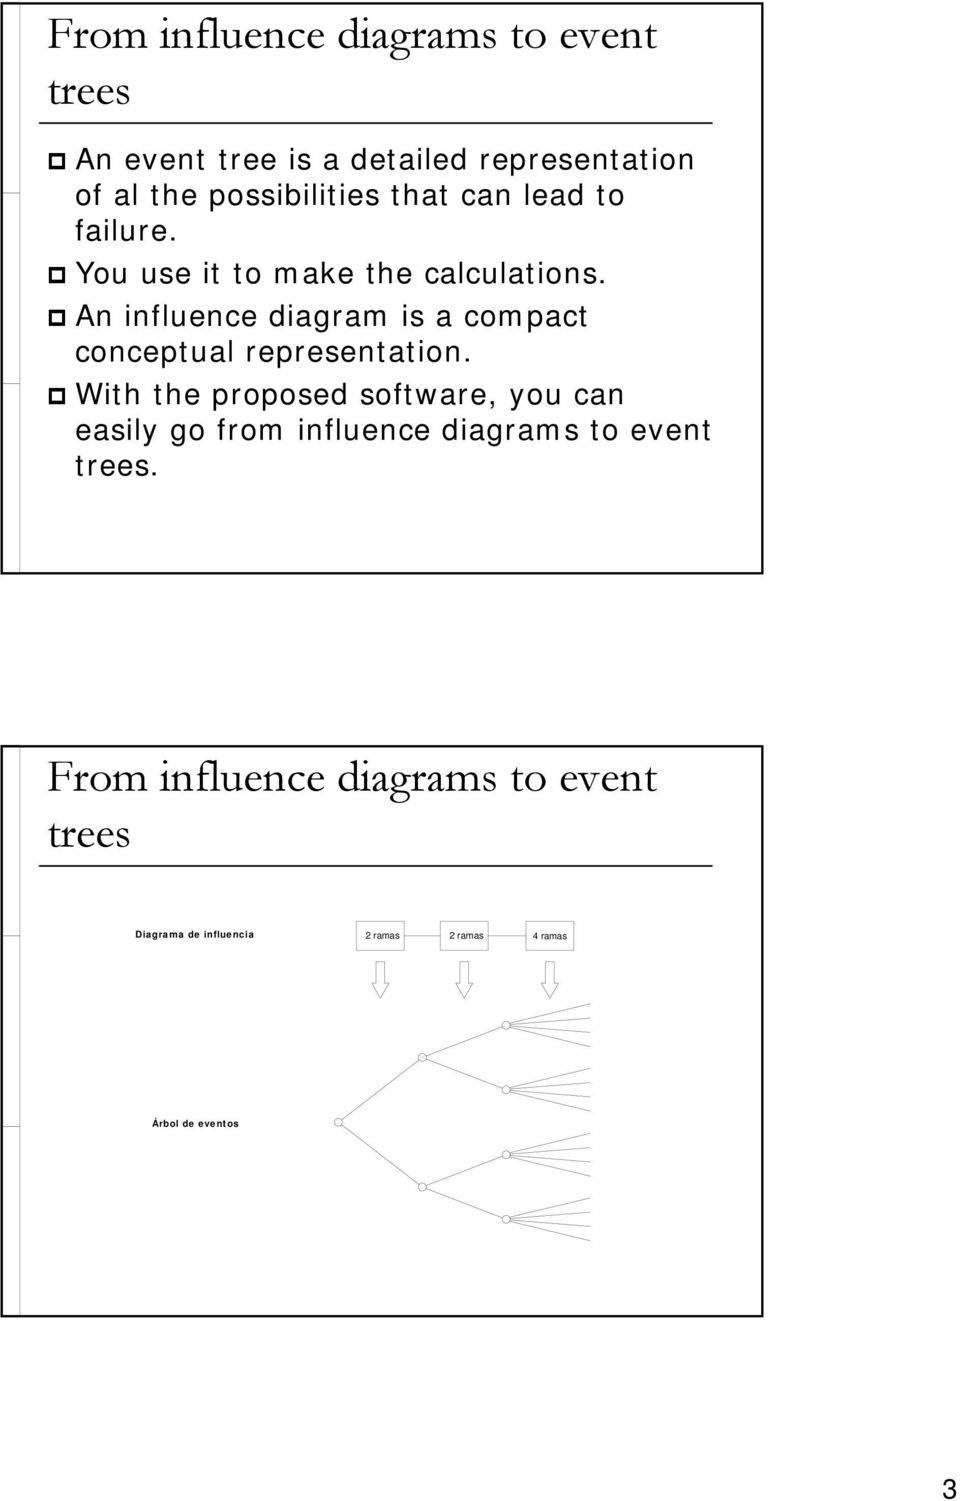 An influence diagram is a compact conceptual representation.